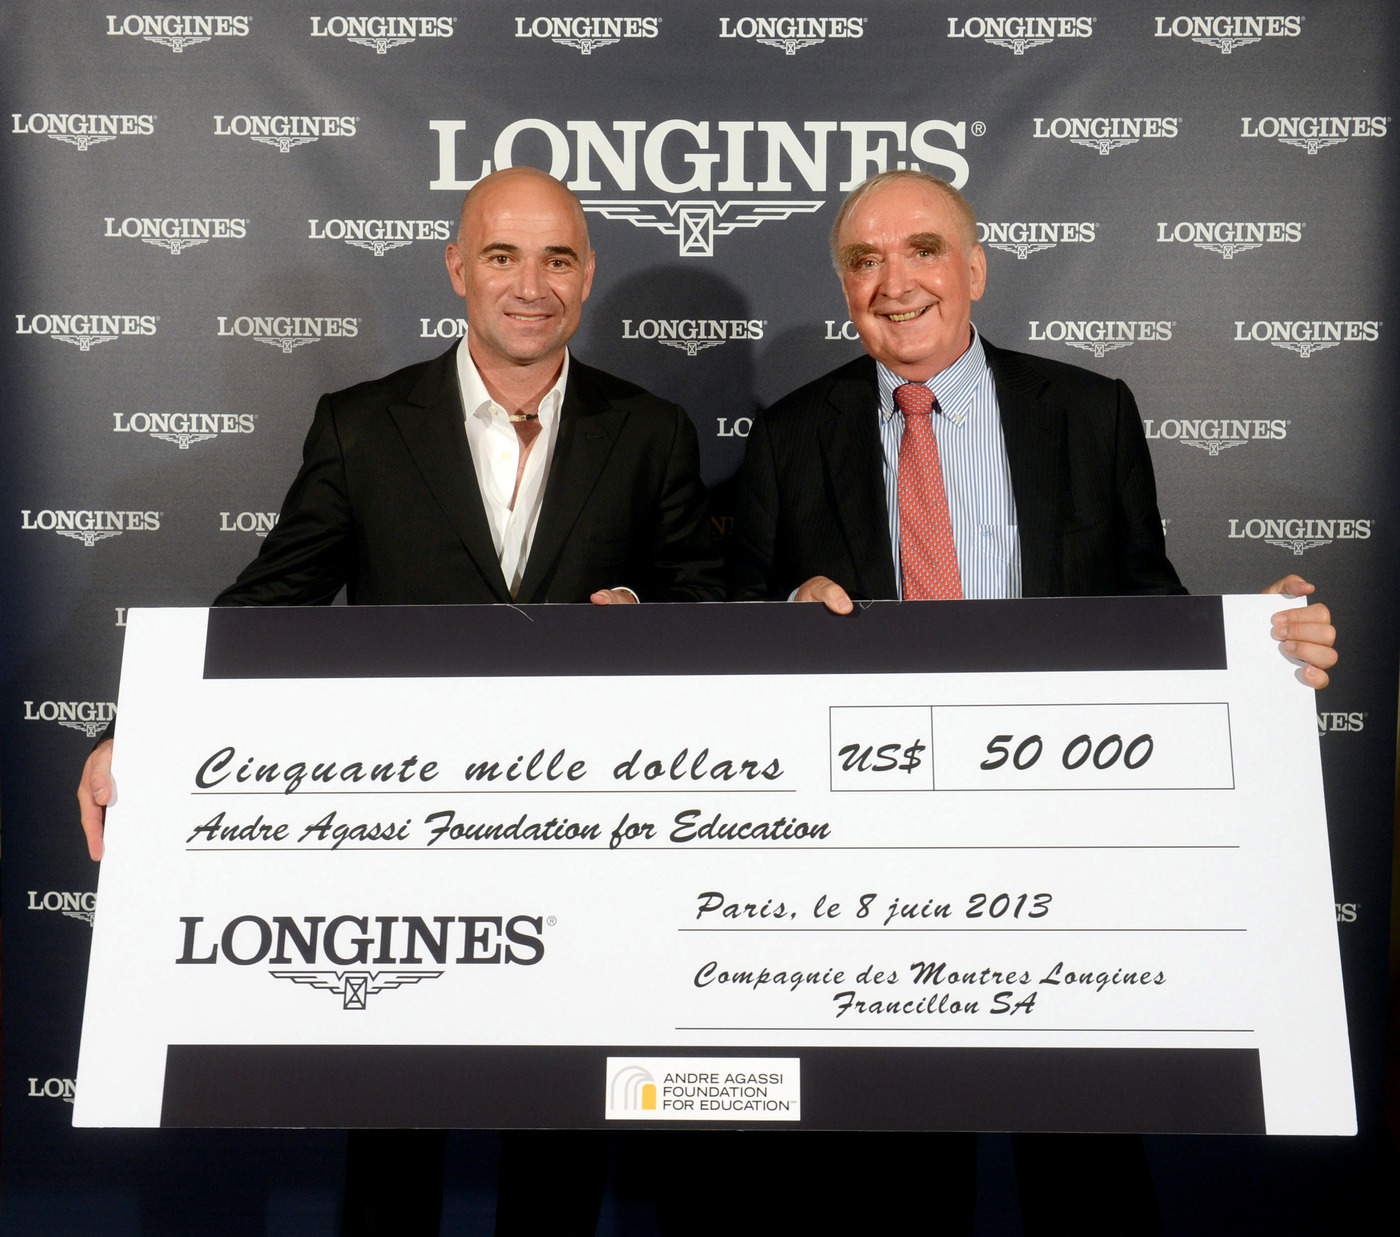 Longines Corporate Event: Longines Ambassador of Elegance Andre Agassi in Paris this weekend 2